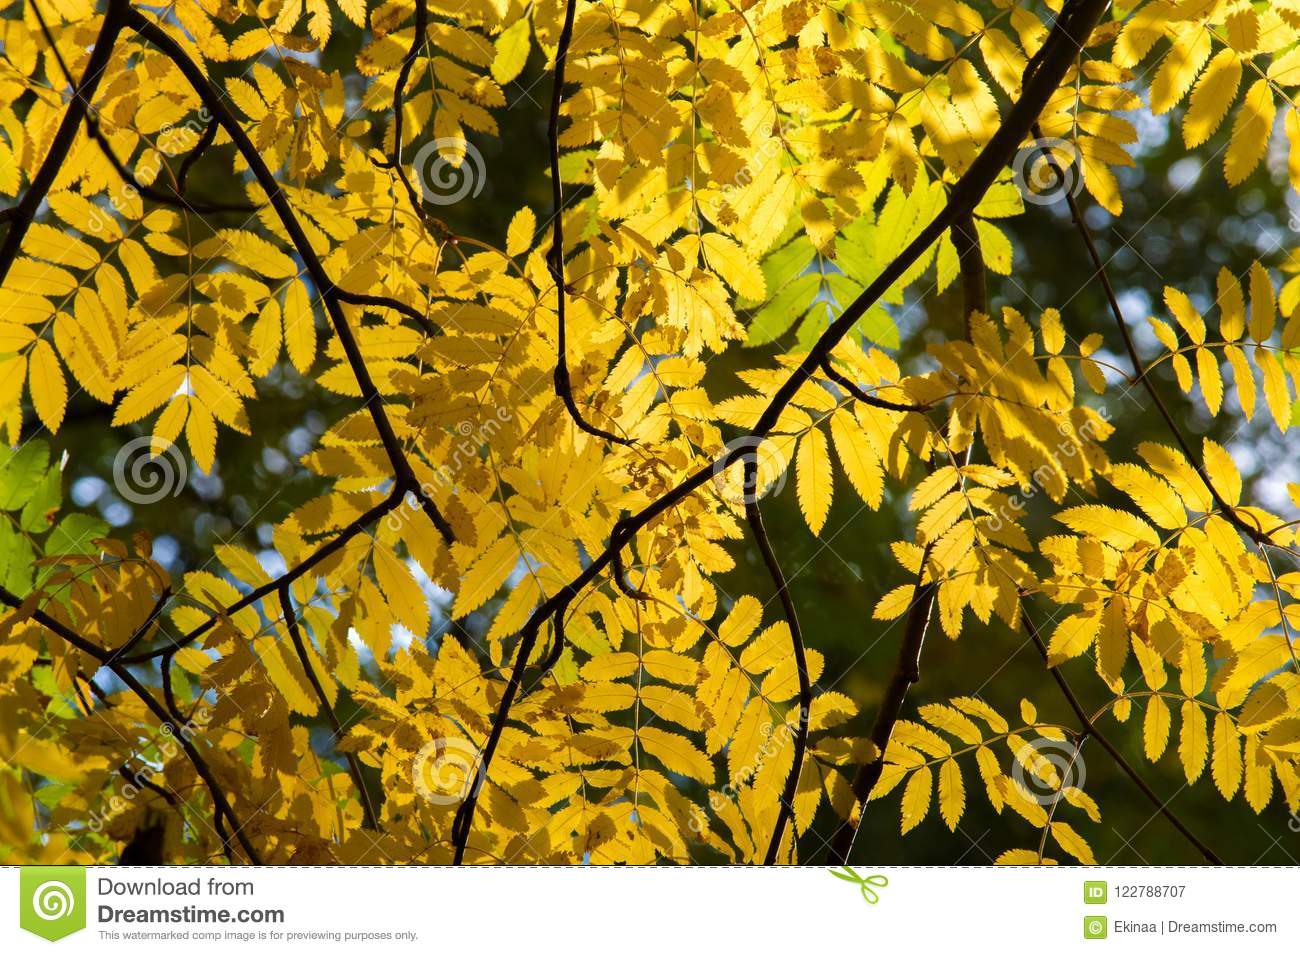 Texture, background, pattern. Red yellow green autumn leaves on